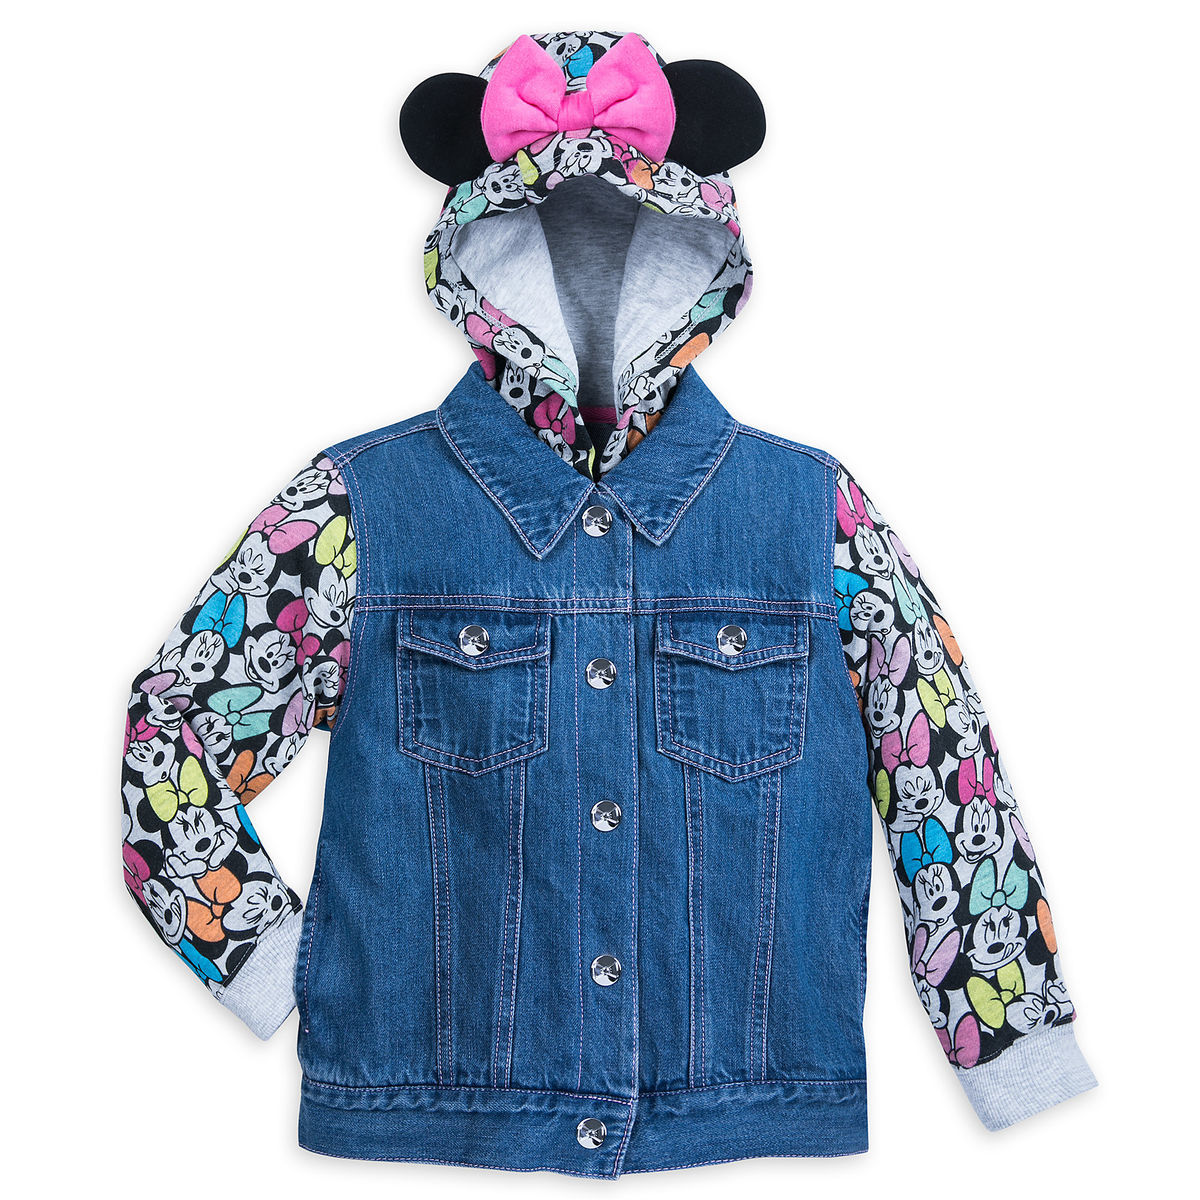 7005fd9b25888 Product Image of Minnie Mouse Denim Hooded Jacket for Girls   1